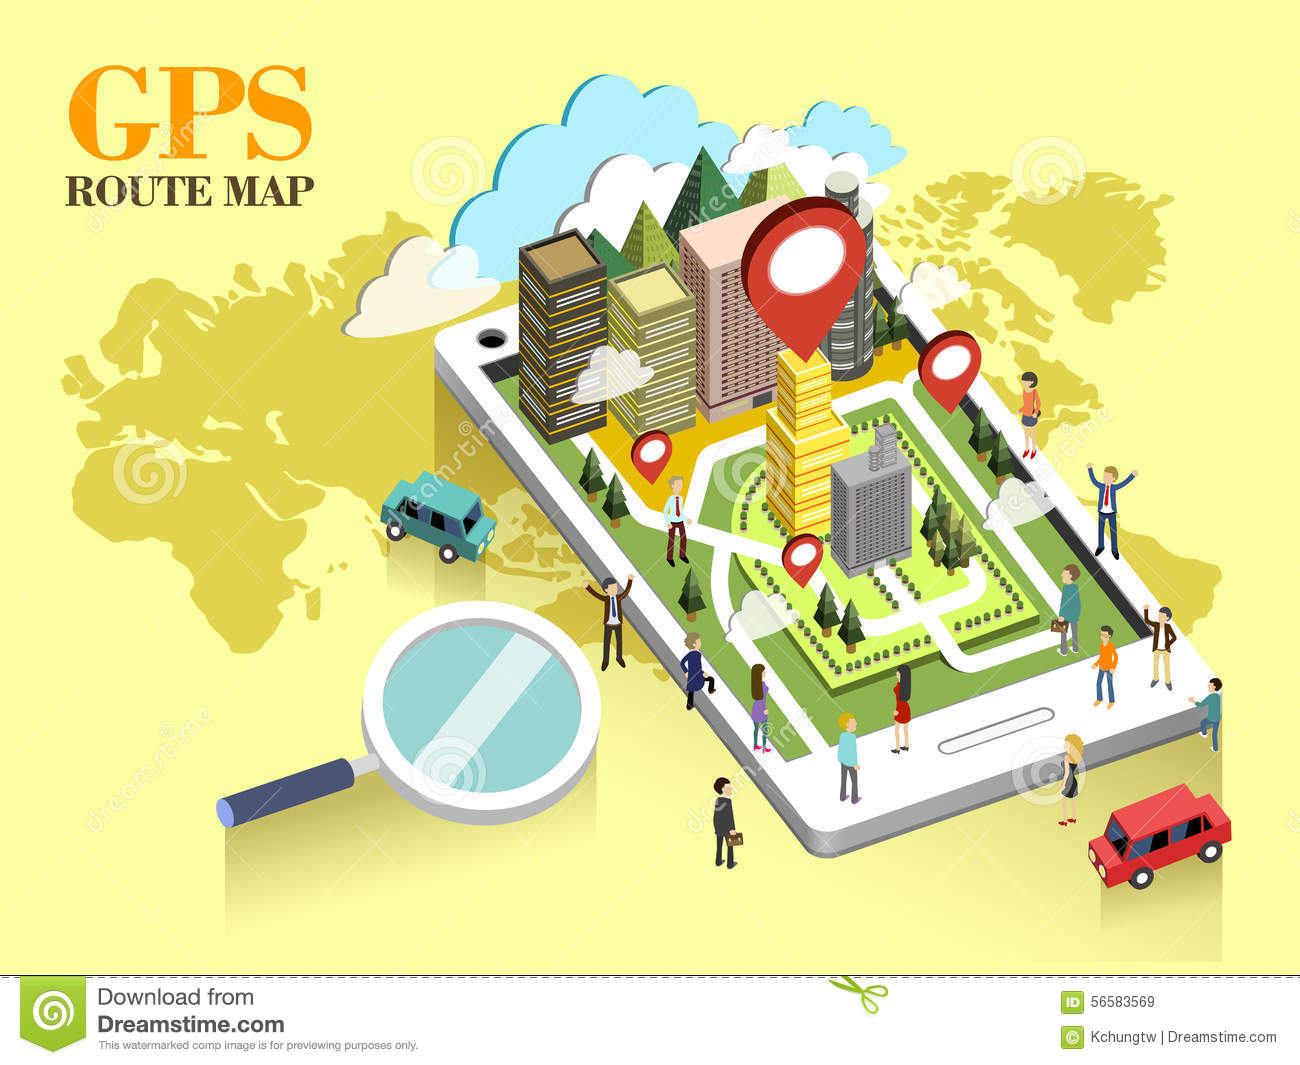 Gps Route Map GPS route map concept stock vector. Illustration of plane   56583569